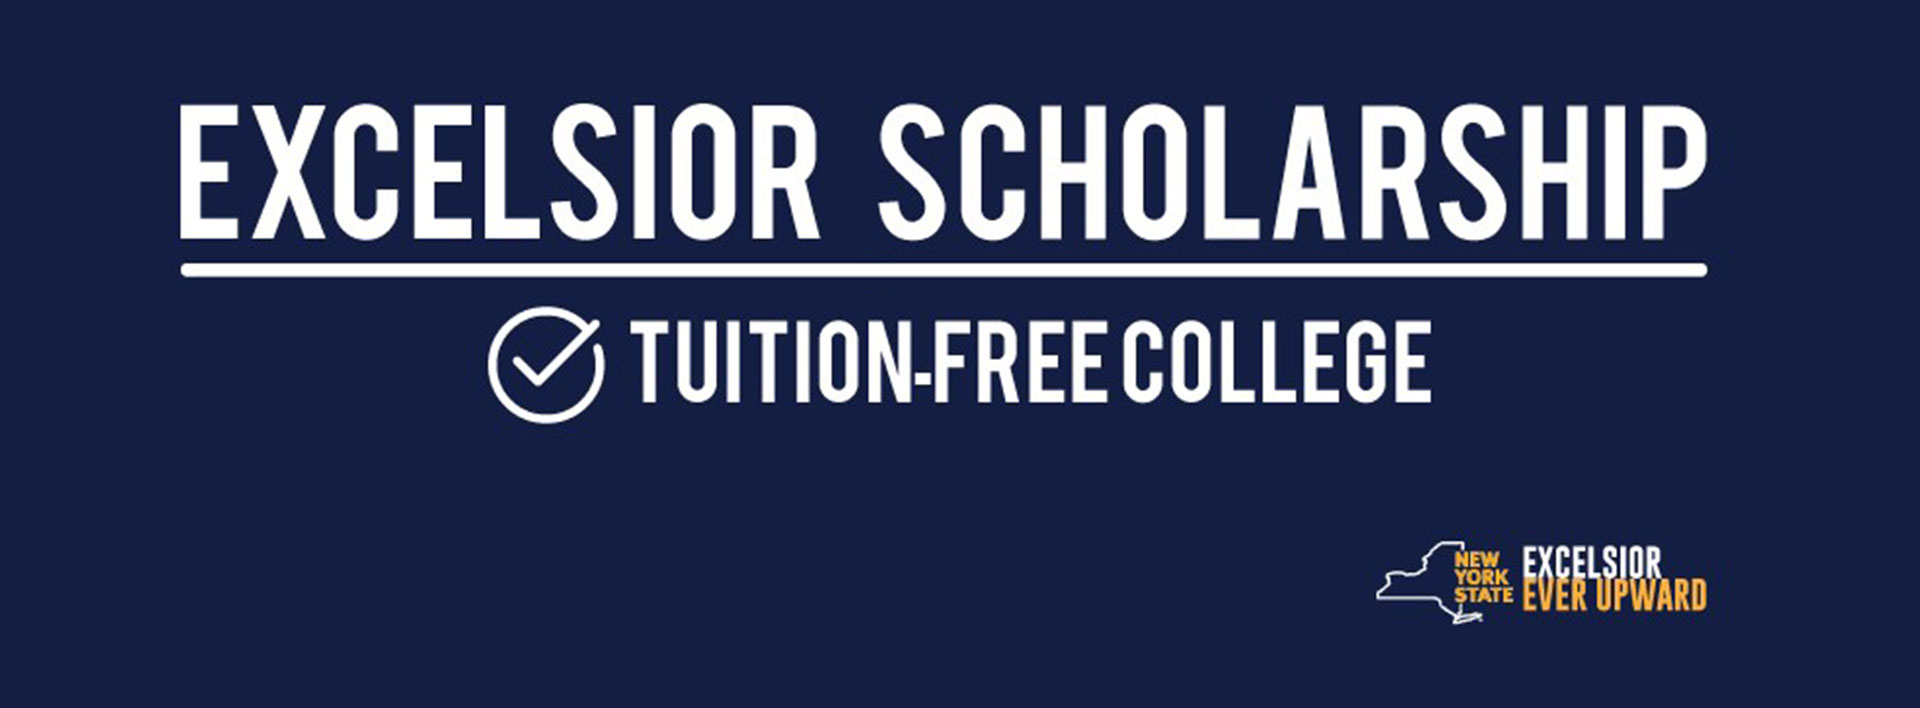 Excelsior Scholarship: Tuition-Free College in New York State, with link to the scholarship application page